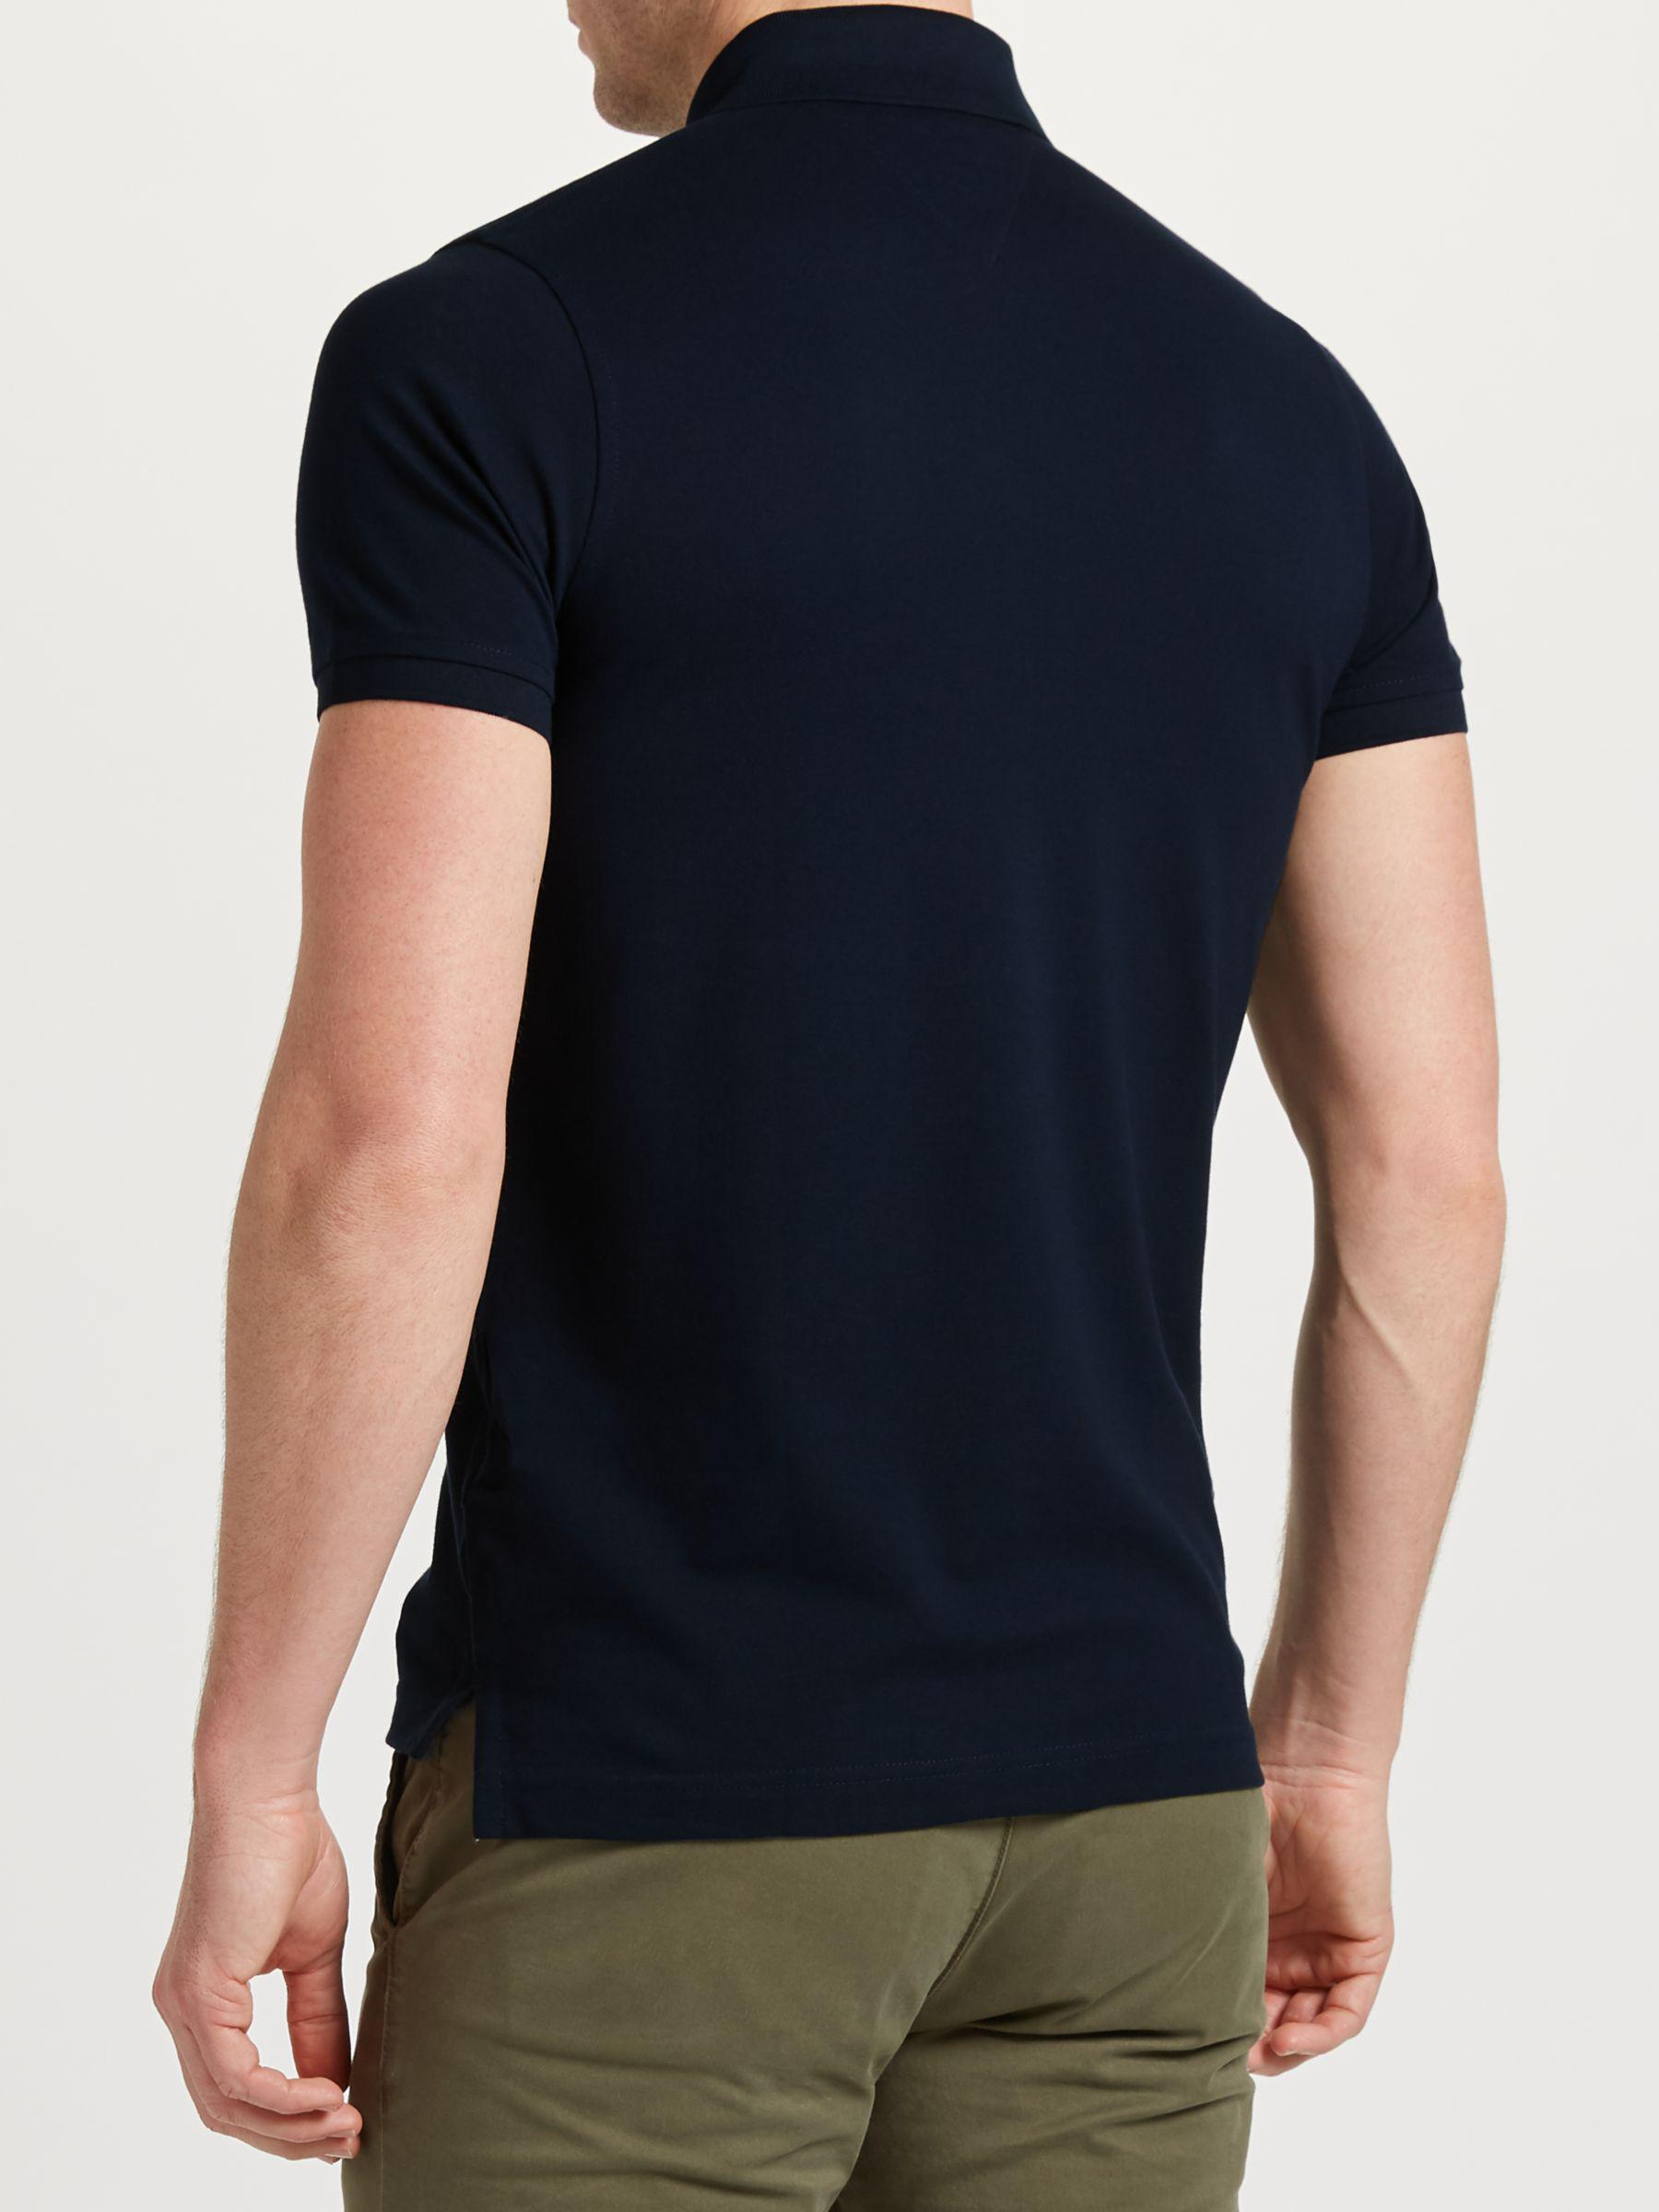 fb50e721d9b5a Tommy Hilfiger Navy Slim Fit Polo Shirt in Blue for Men - Save 30% - Lyst